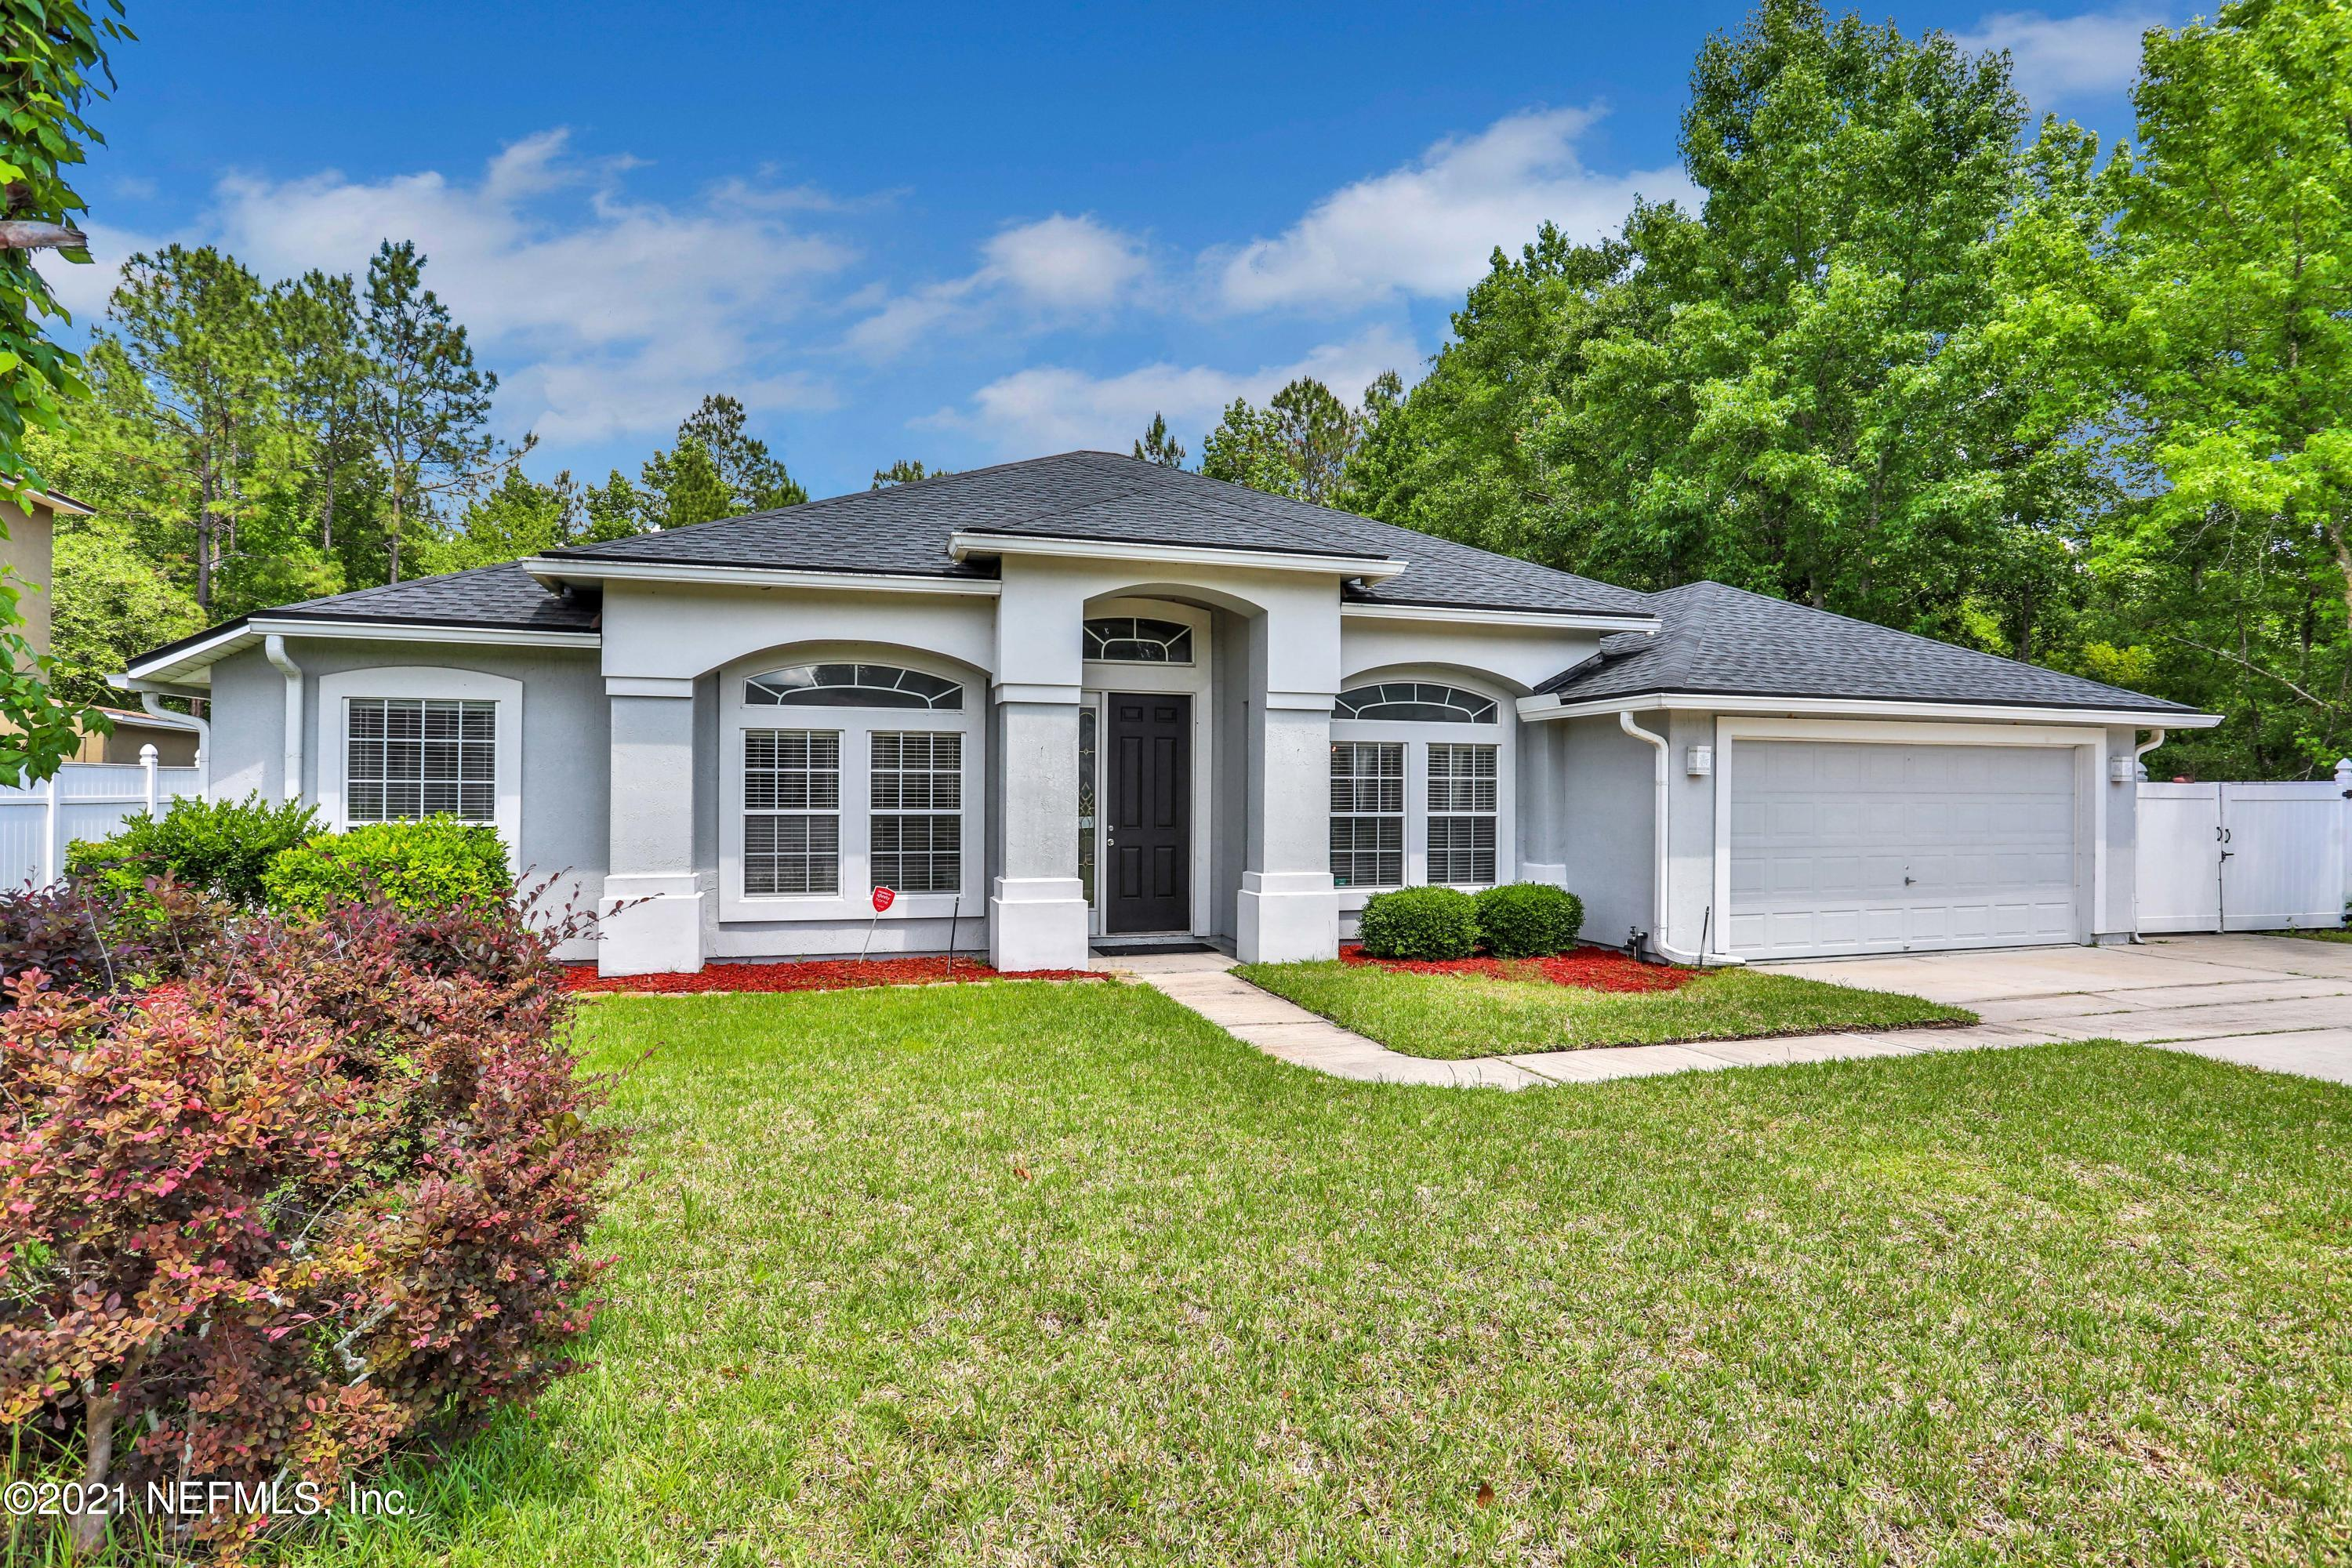 2425 WATERMILL, ORANGE PARK, FLORIDA 32073, 3 Bedrooms Bedrooms, ,3 BathroomsBathrooms,Residential,For sale,WATERMILL,1108834